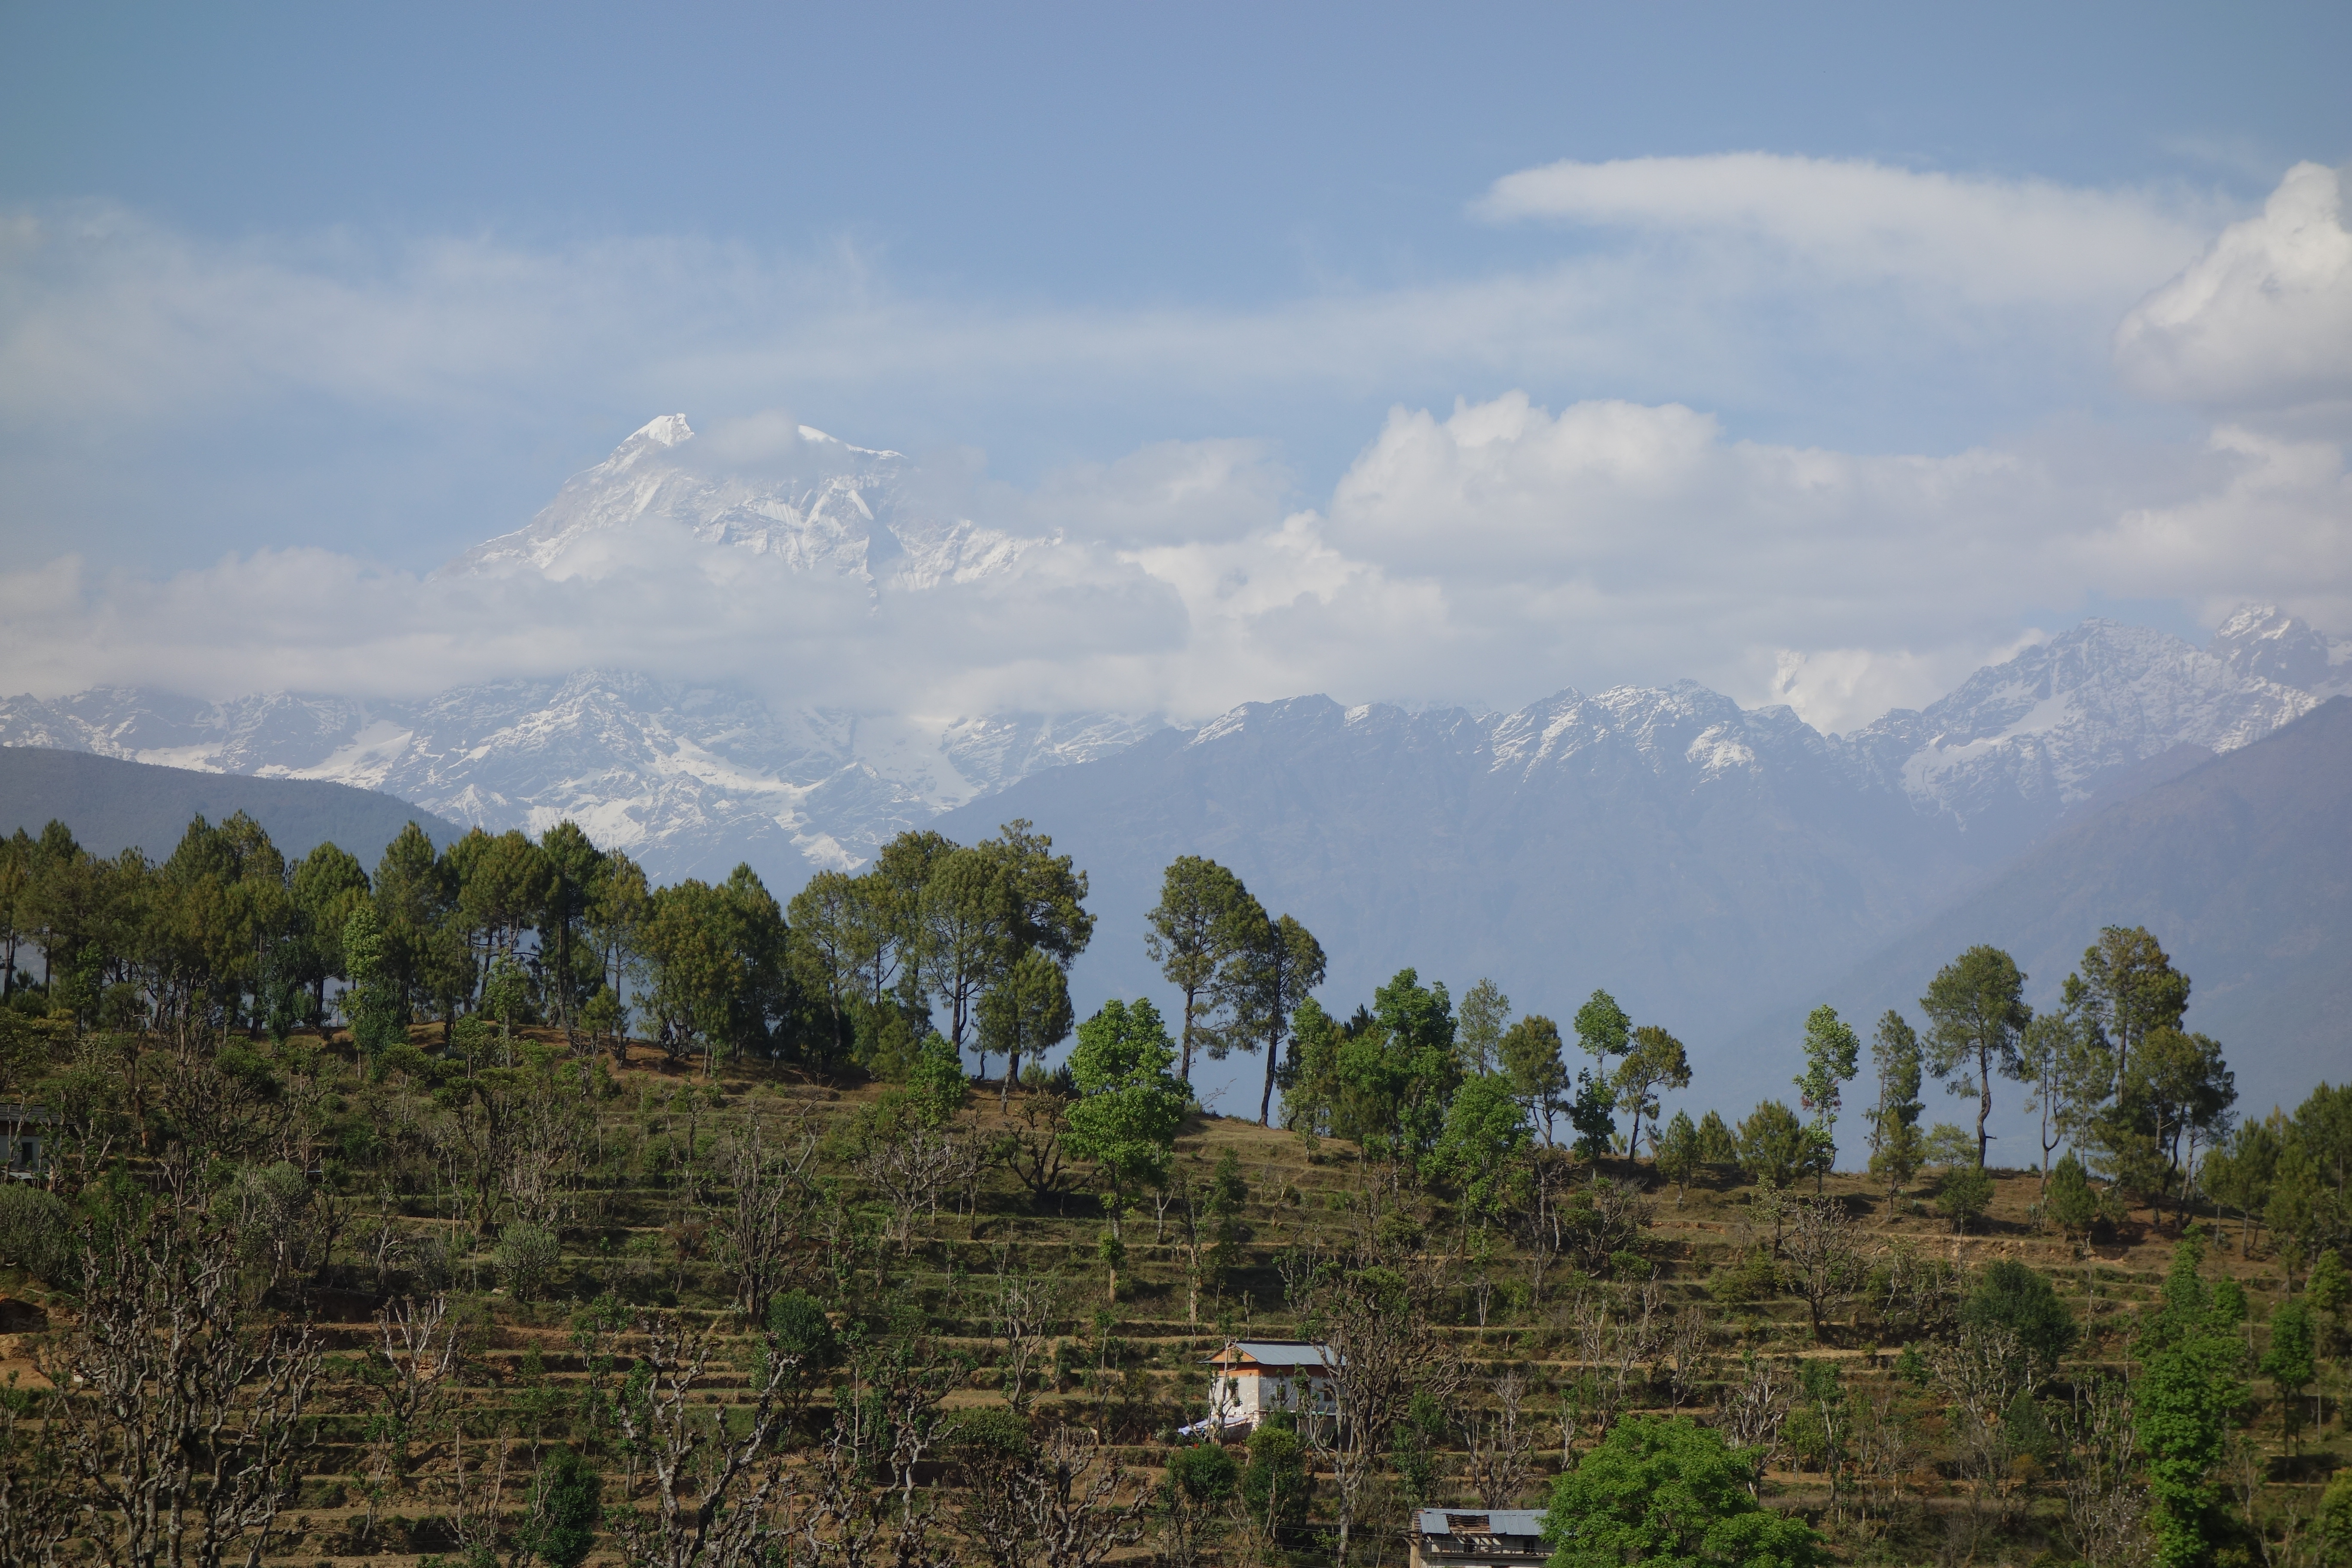 The impressive Gaurishankar, on the Nepal-Chinese border is 7.134m high and serves as eponym for the respective conservation area. Typical land use practices are shown in the foreground with terrace farming and trees used as a source of fodder. Together it represents a kind of agroforestry (by Dr. Viktor Bruckman)